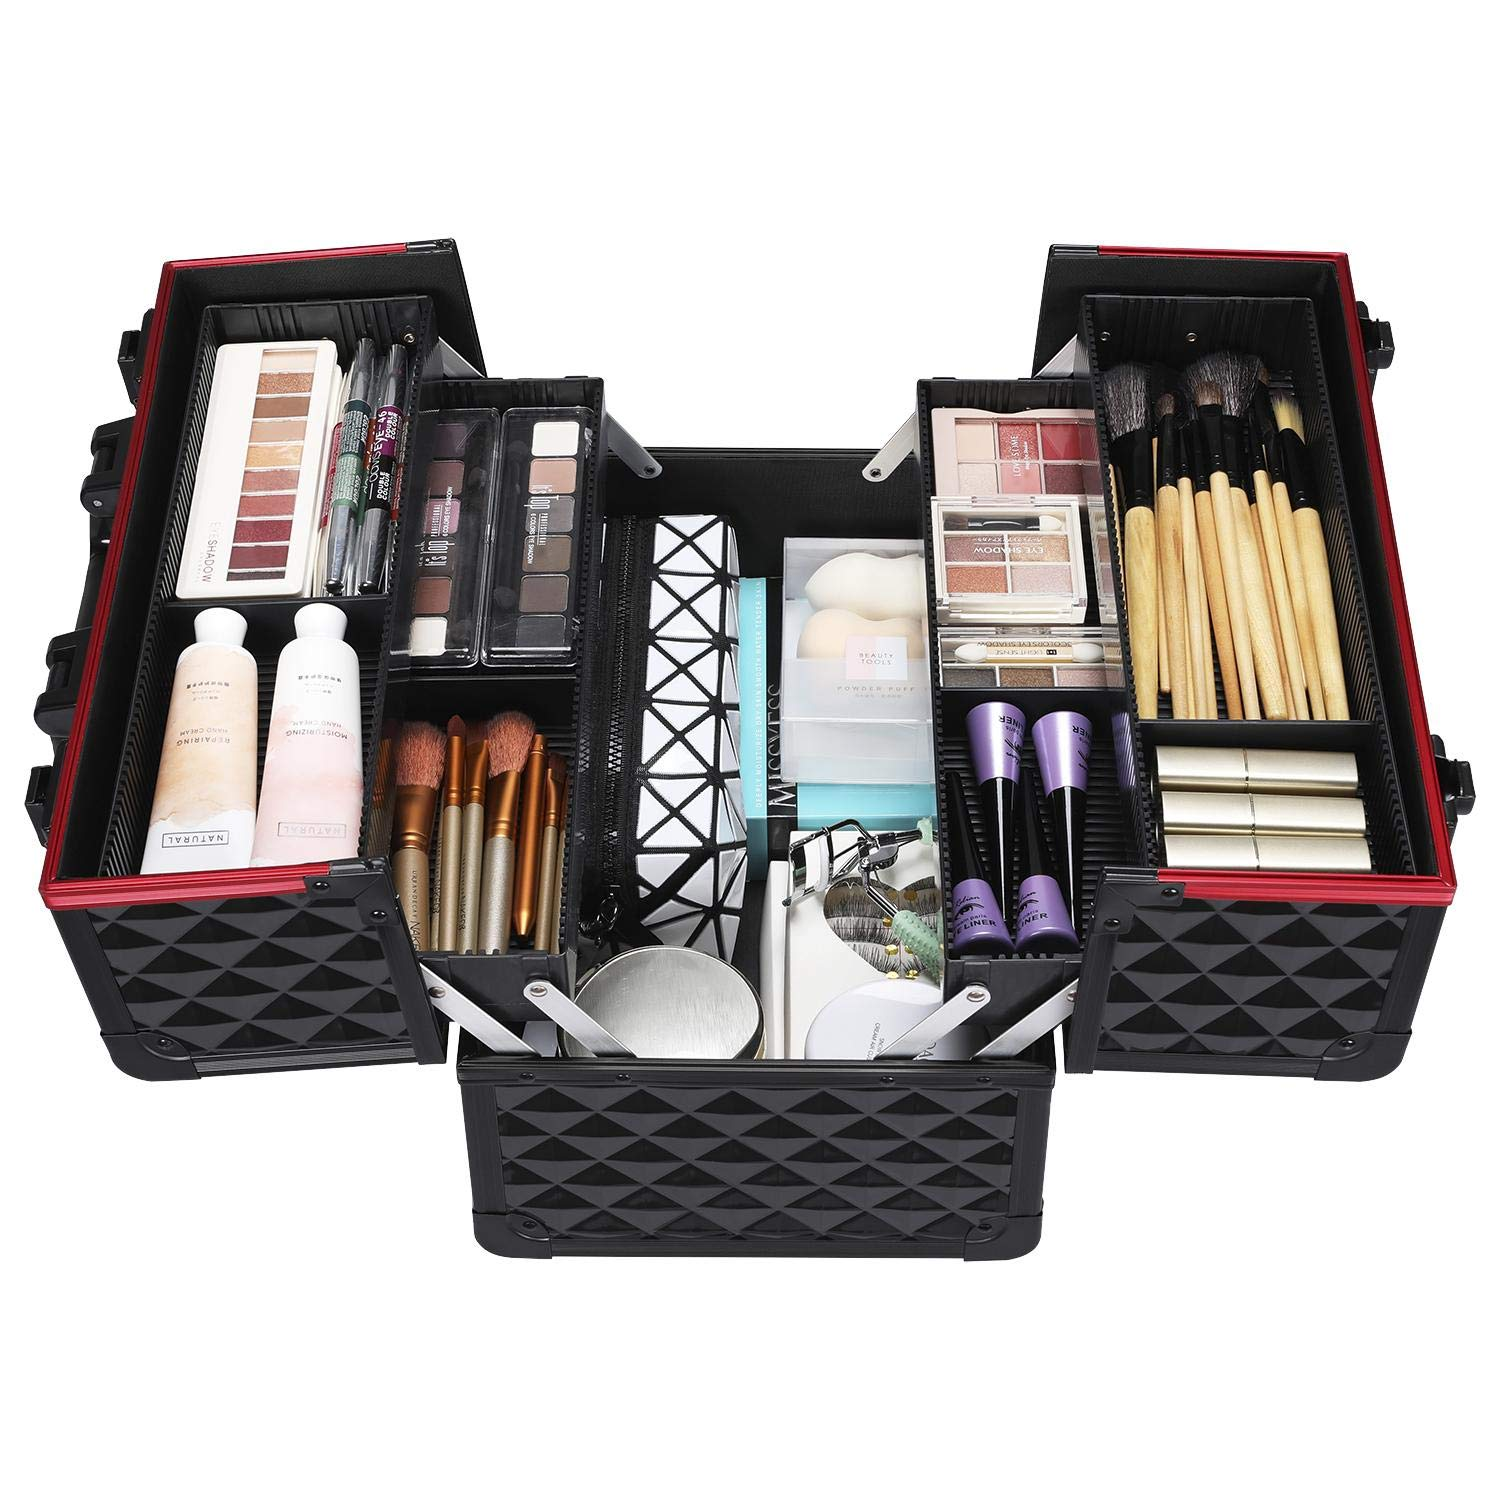 Trays allowing access to all the contents for this makeup case